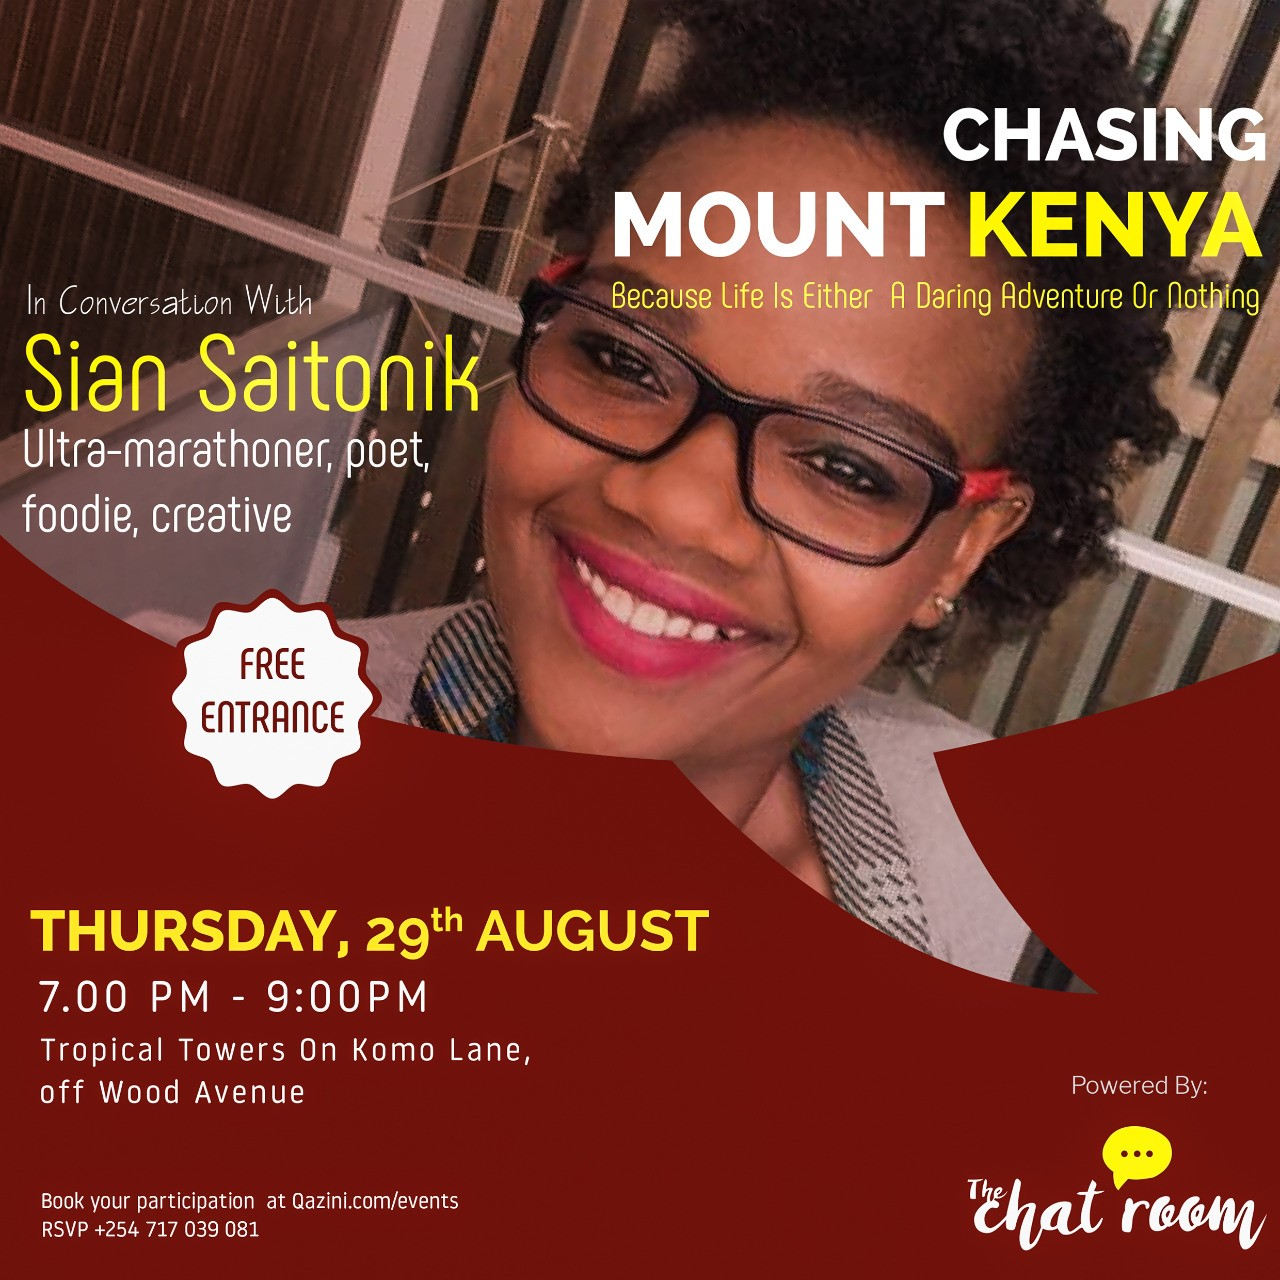 The Chat Room: Chasing Mount Kenya